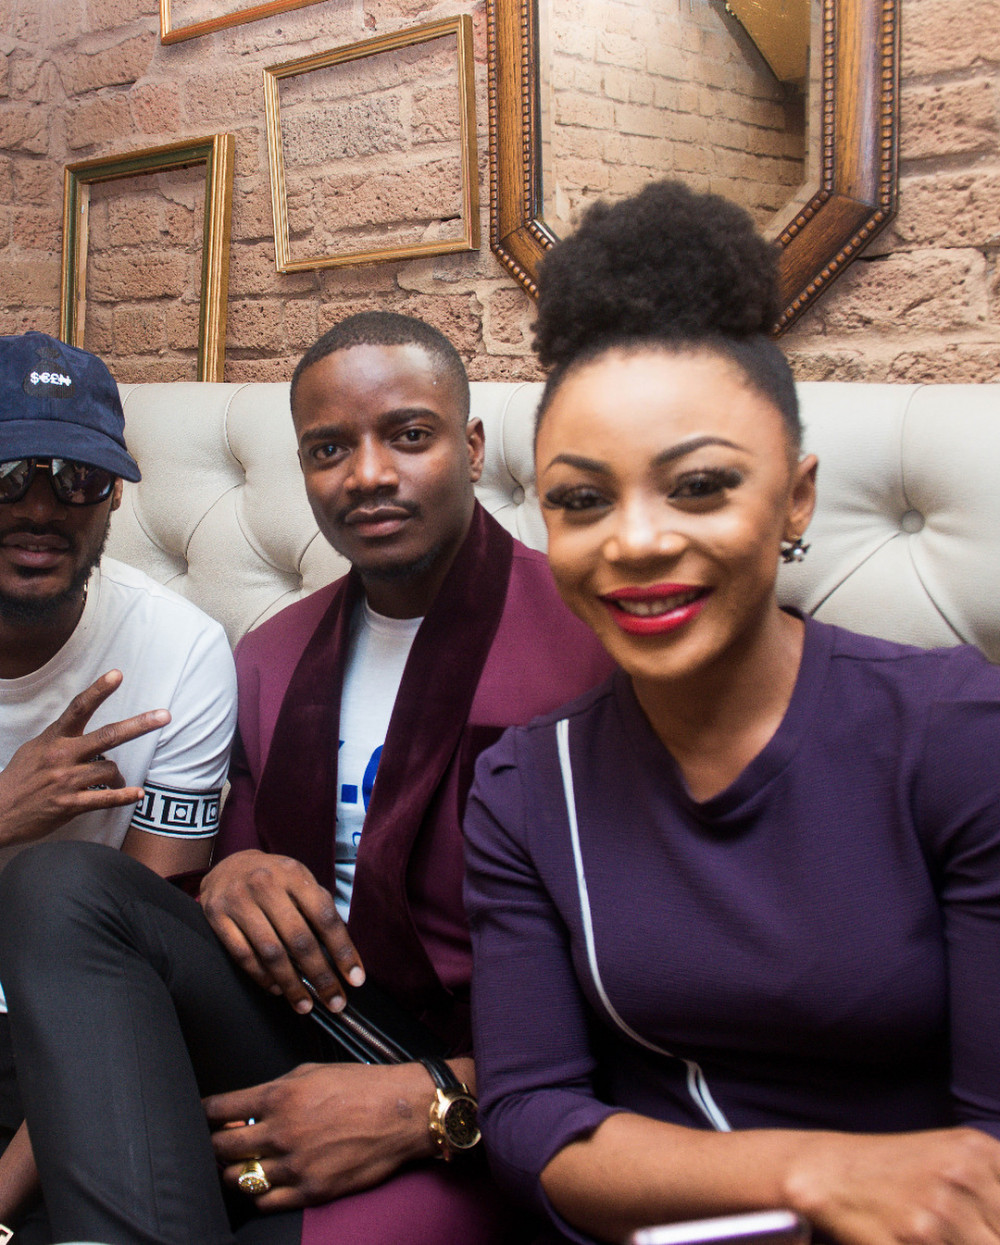 #BBNaija's Leo & Ifu Ennada join other stars for One Africa Music Fest Welcome Party in London